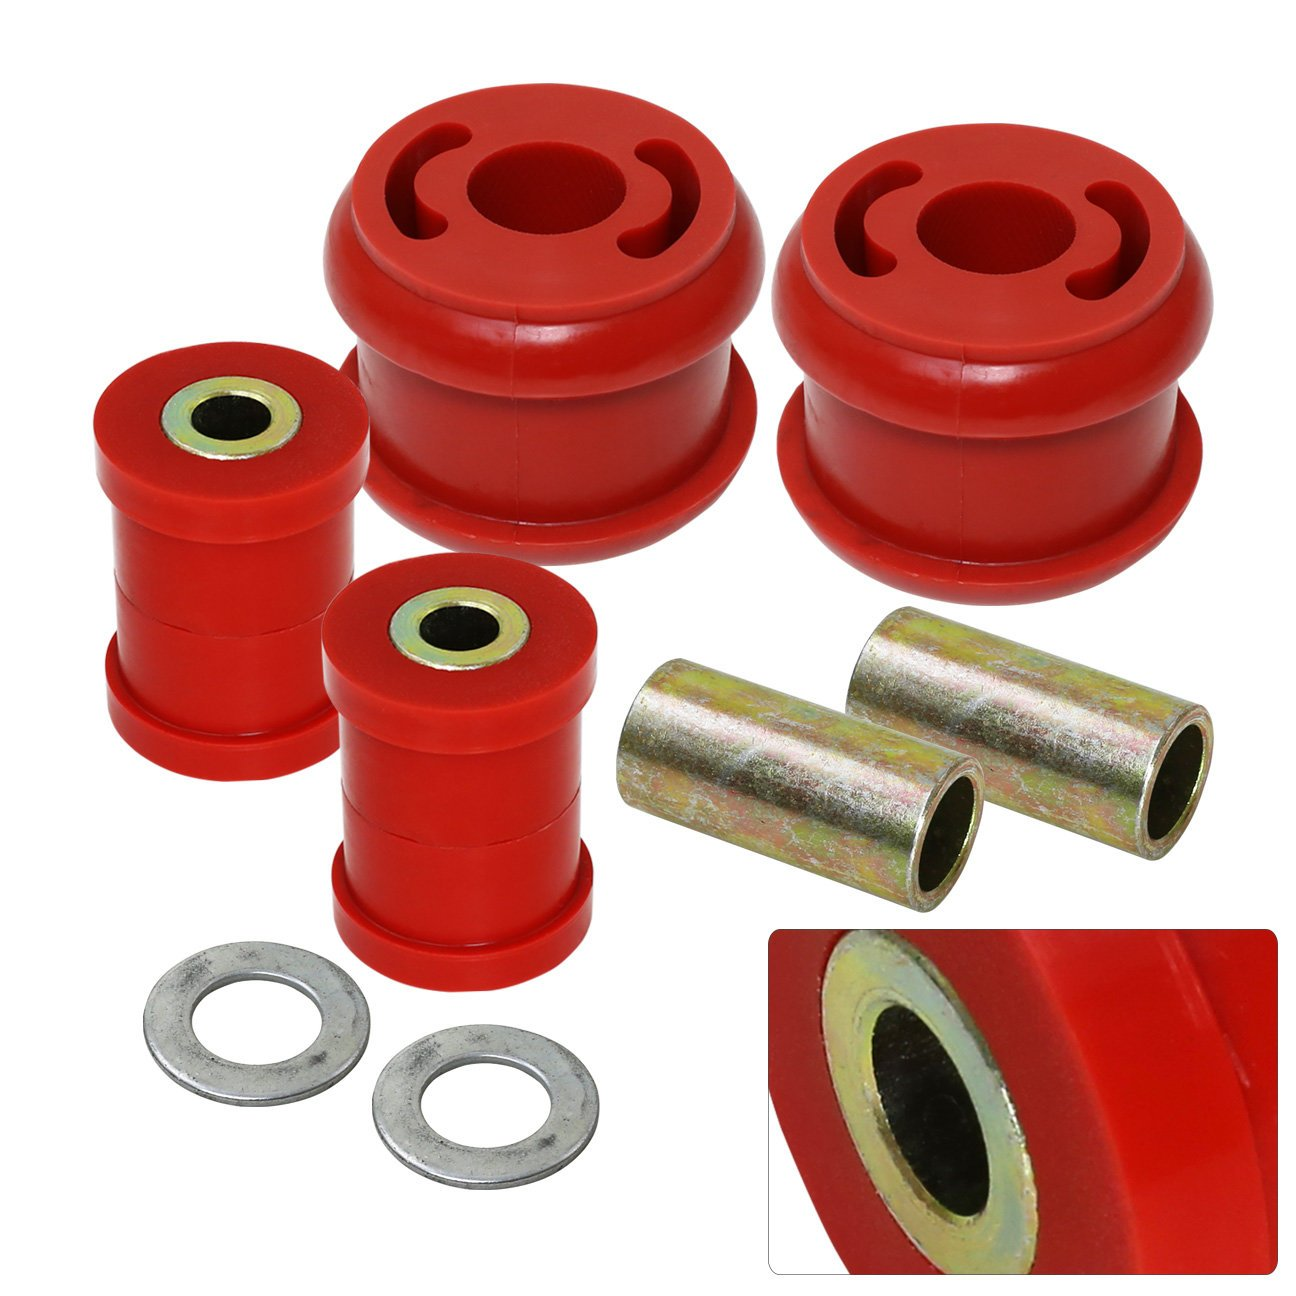 For Subaru Forester Sh Impreza WRX Legacy Outback Polyurethane Front Lower Control Arm Bushing Upgrade Replacement